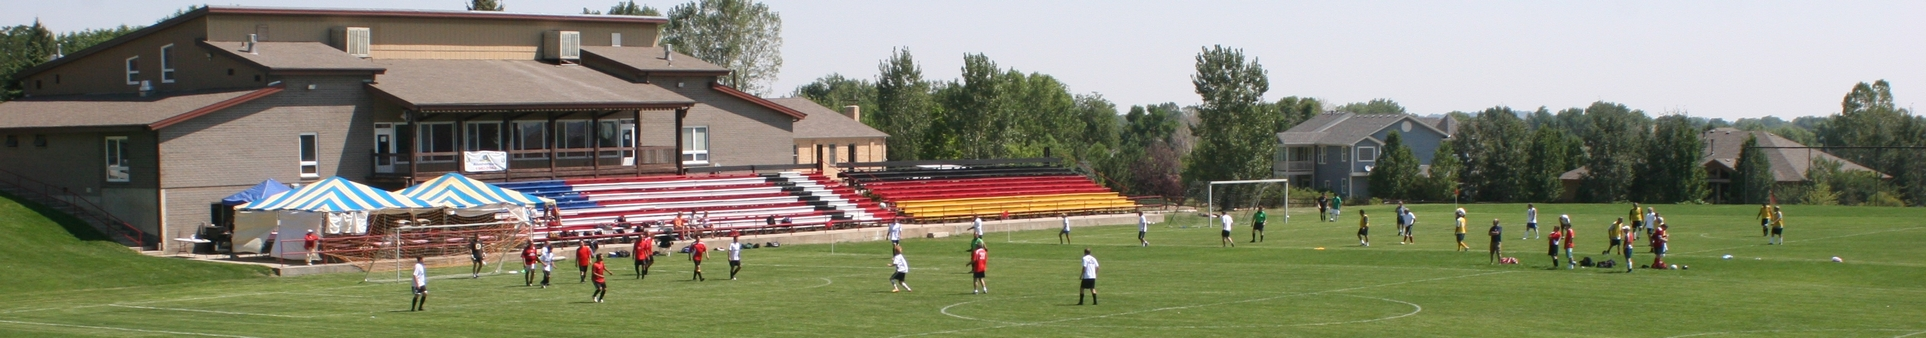 Denver Kickers Sports Club in Golden Colorado